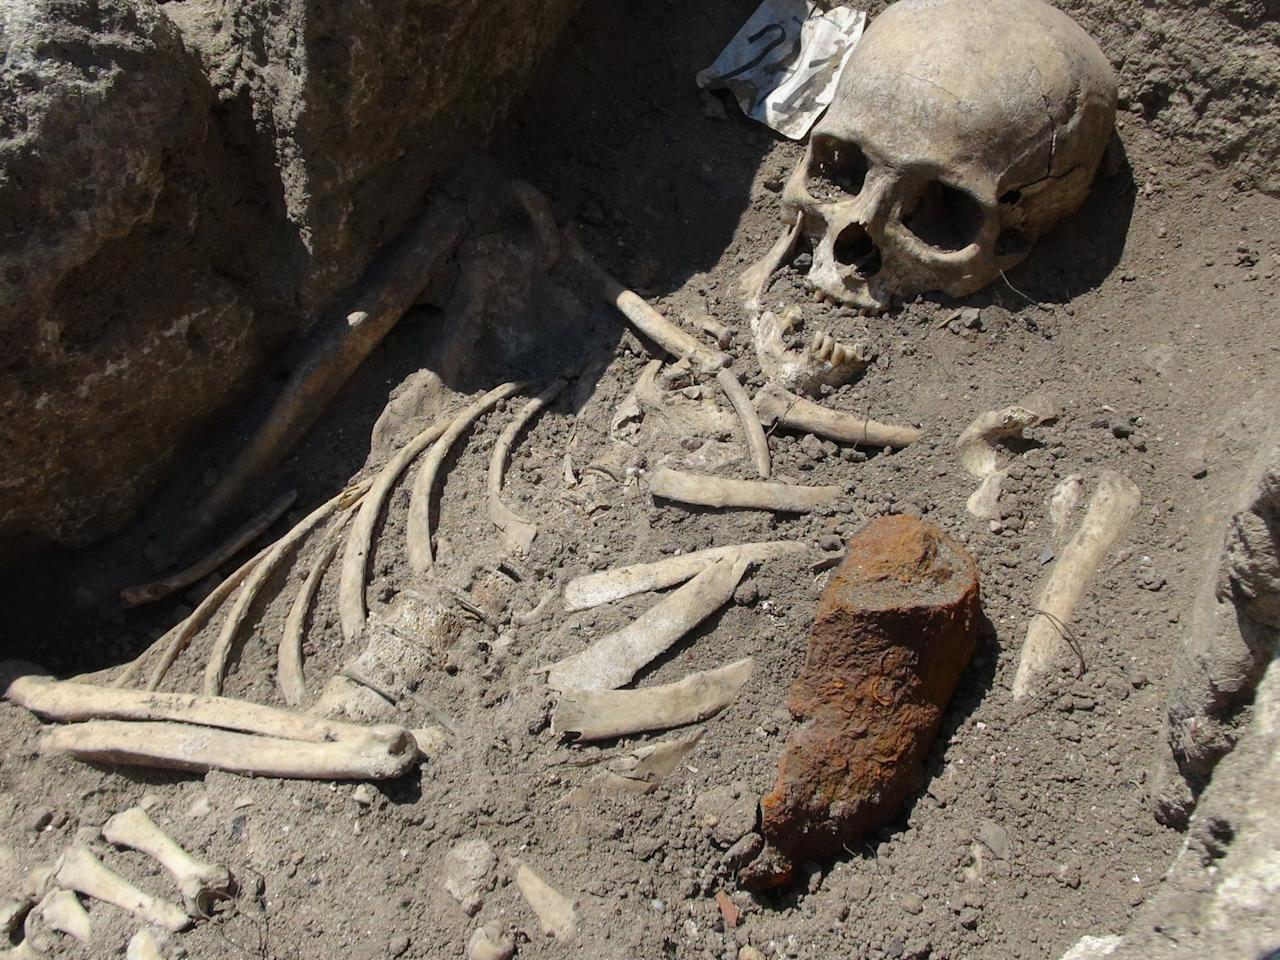 In this Sunday, June 3, 2012 photo showing a piece of iron next to skeleton dated back in the Middle Ages, at the archeological site in the Black sea town of Sozopol. Bulgarian archaeologists say they have unearthed centuries-old skeletons pinned down through their chests with iron rods - a practice believed to stop the dead from becoming vampires. (AP Photo)